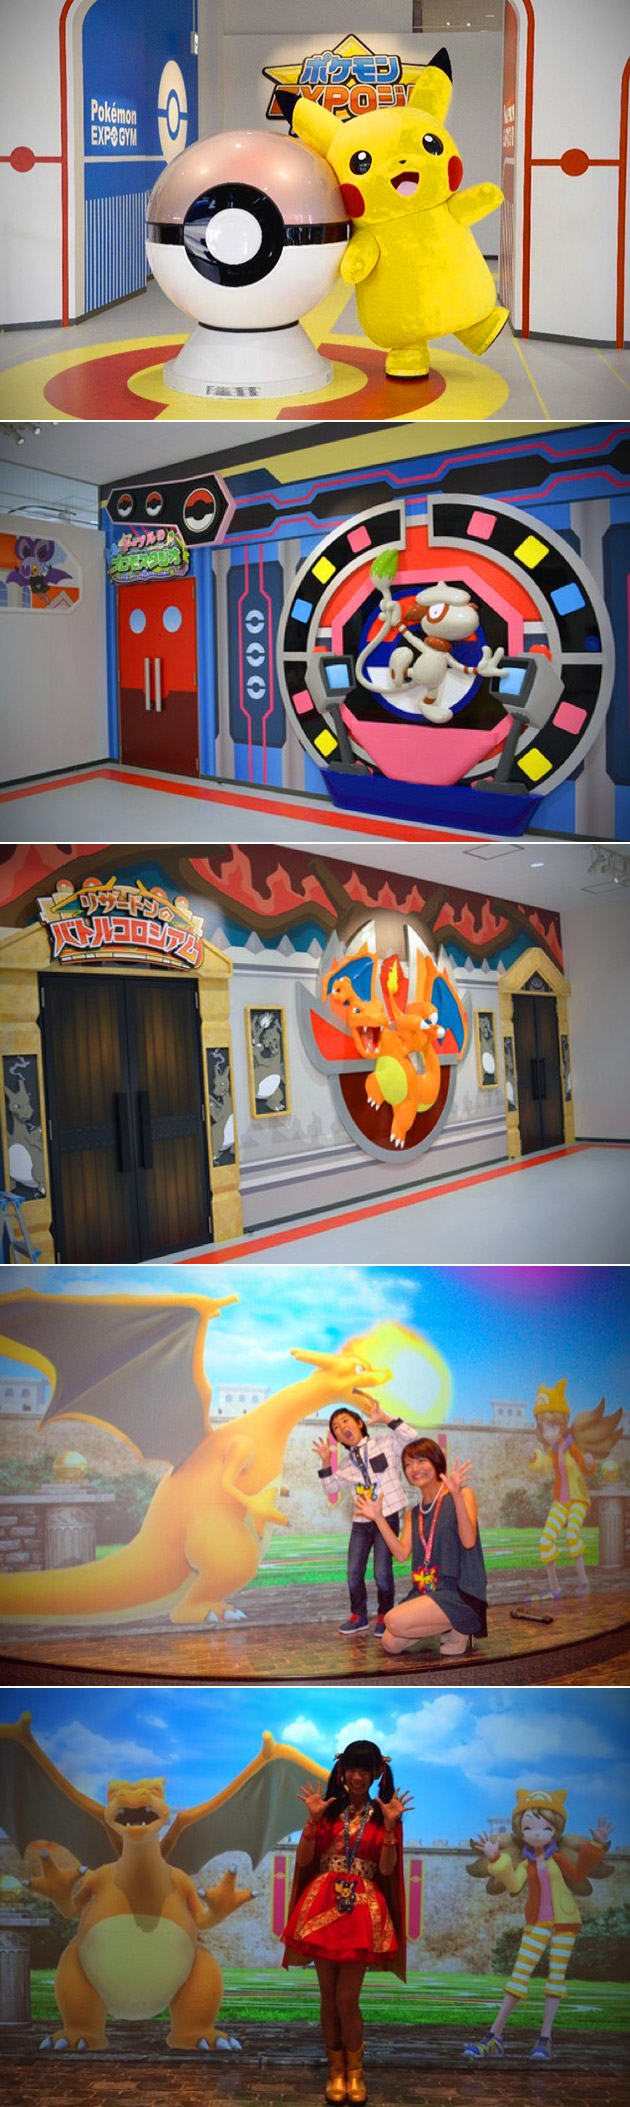 Pokemon Gym Japan